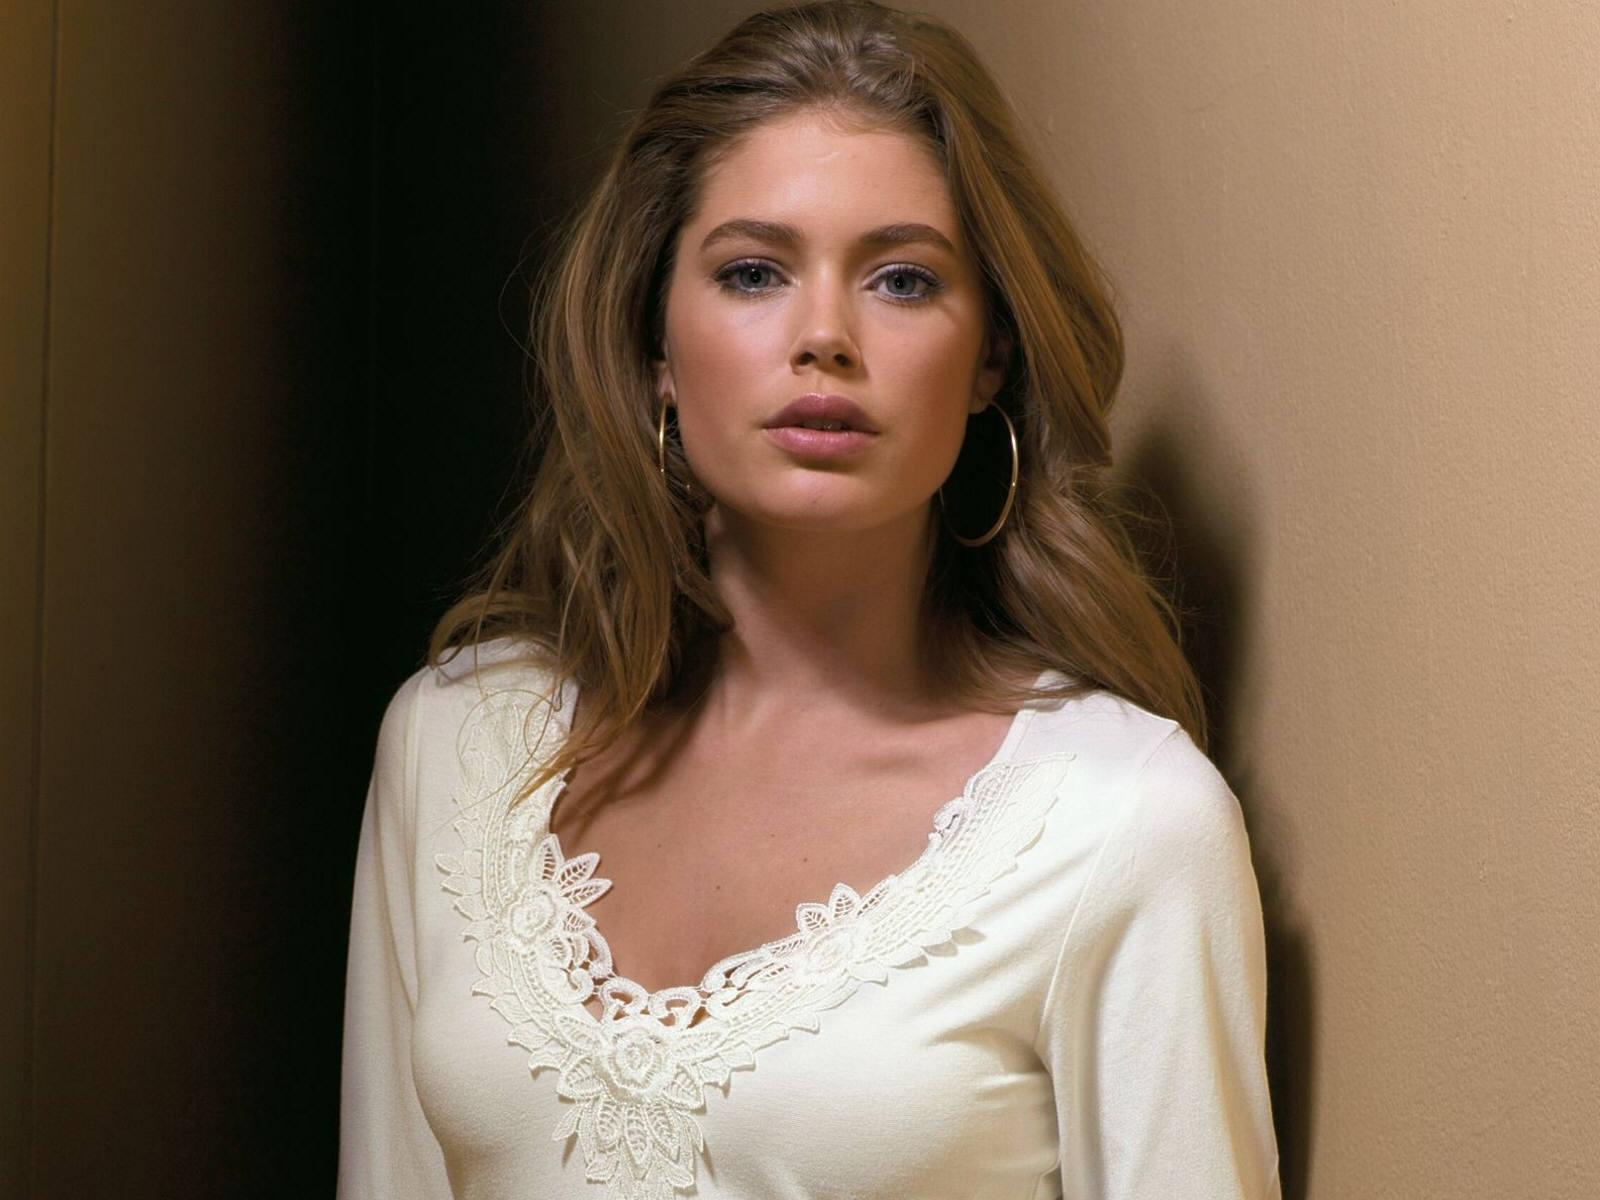 Actress Doutzen Kroes Exclusive Hot Wallpapers